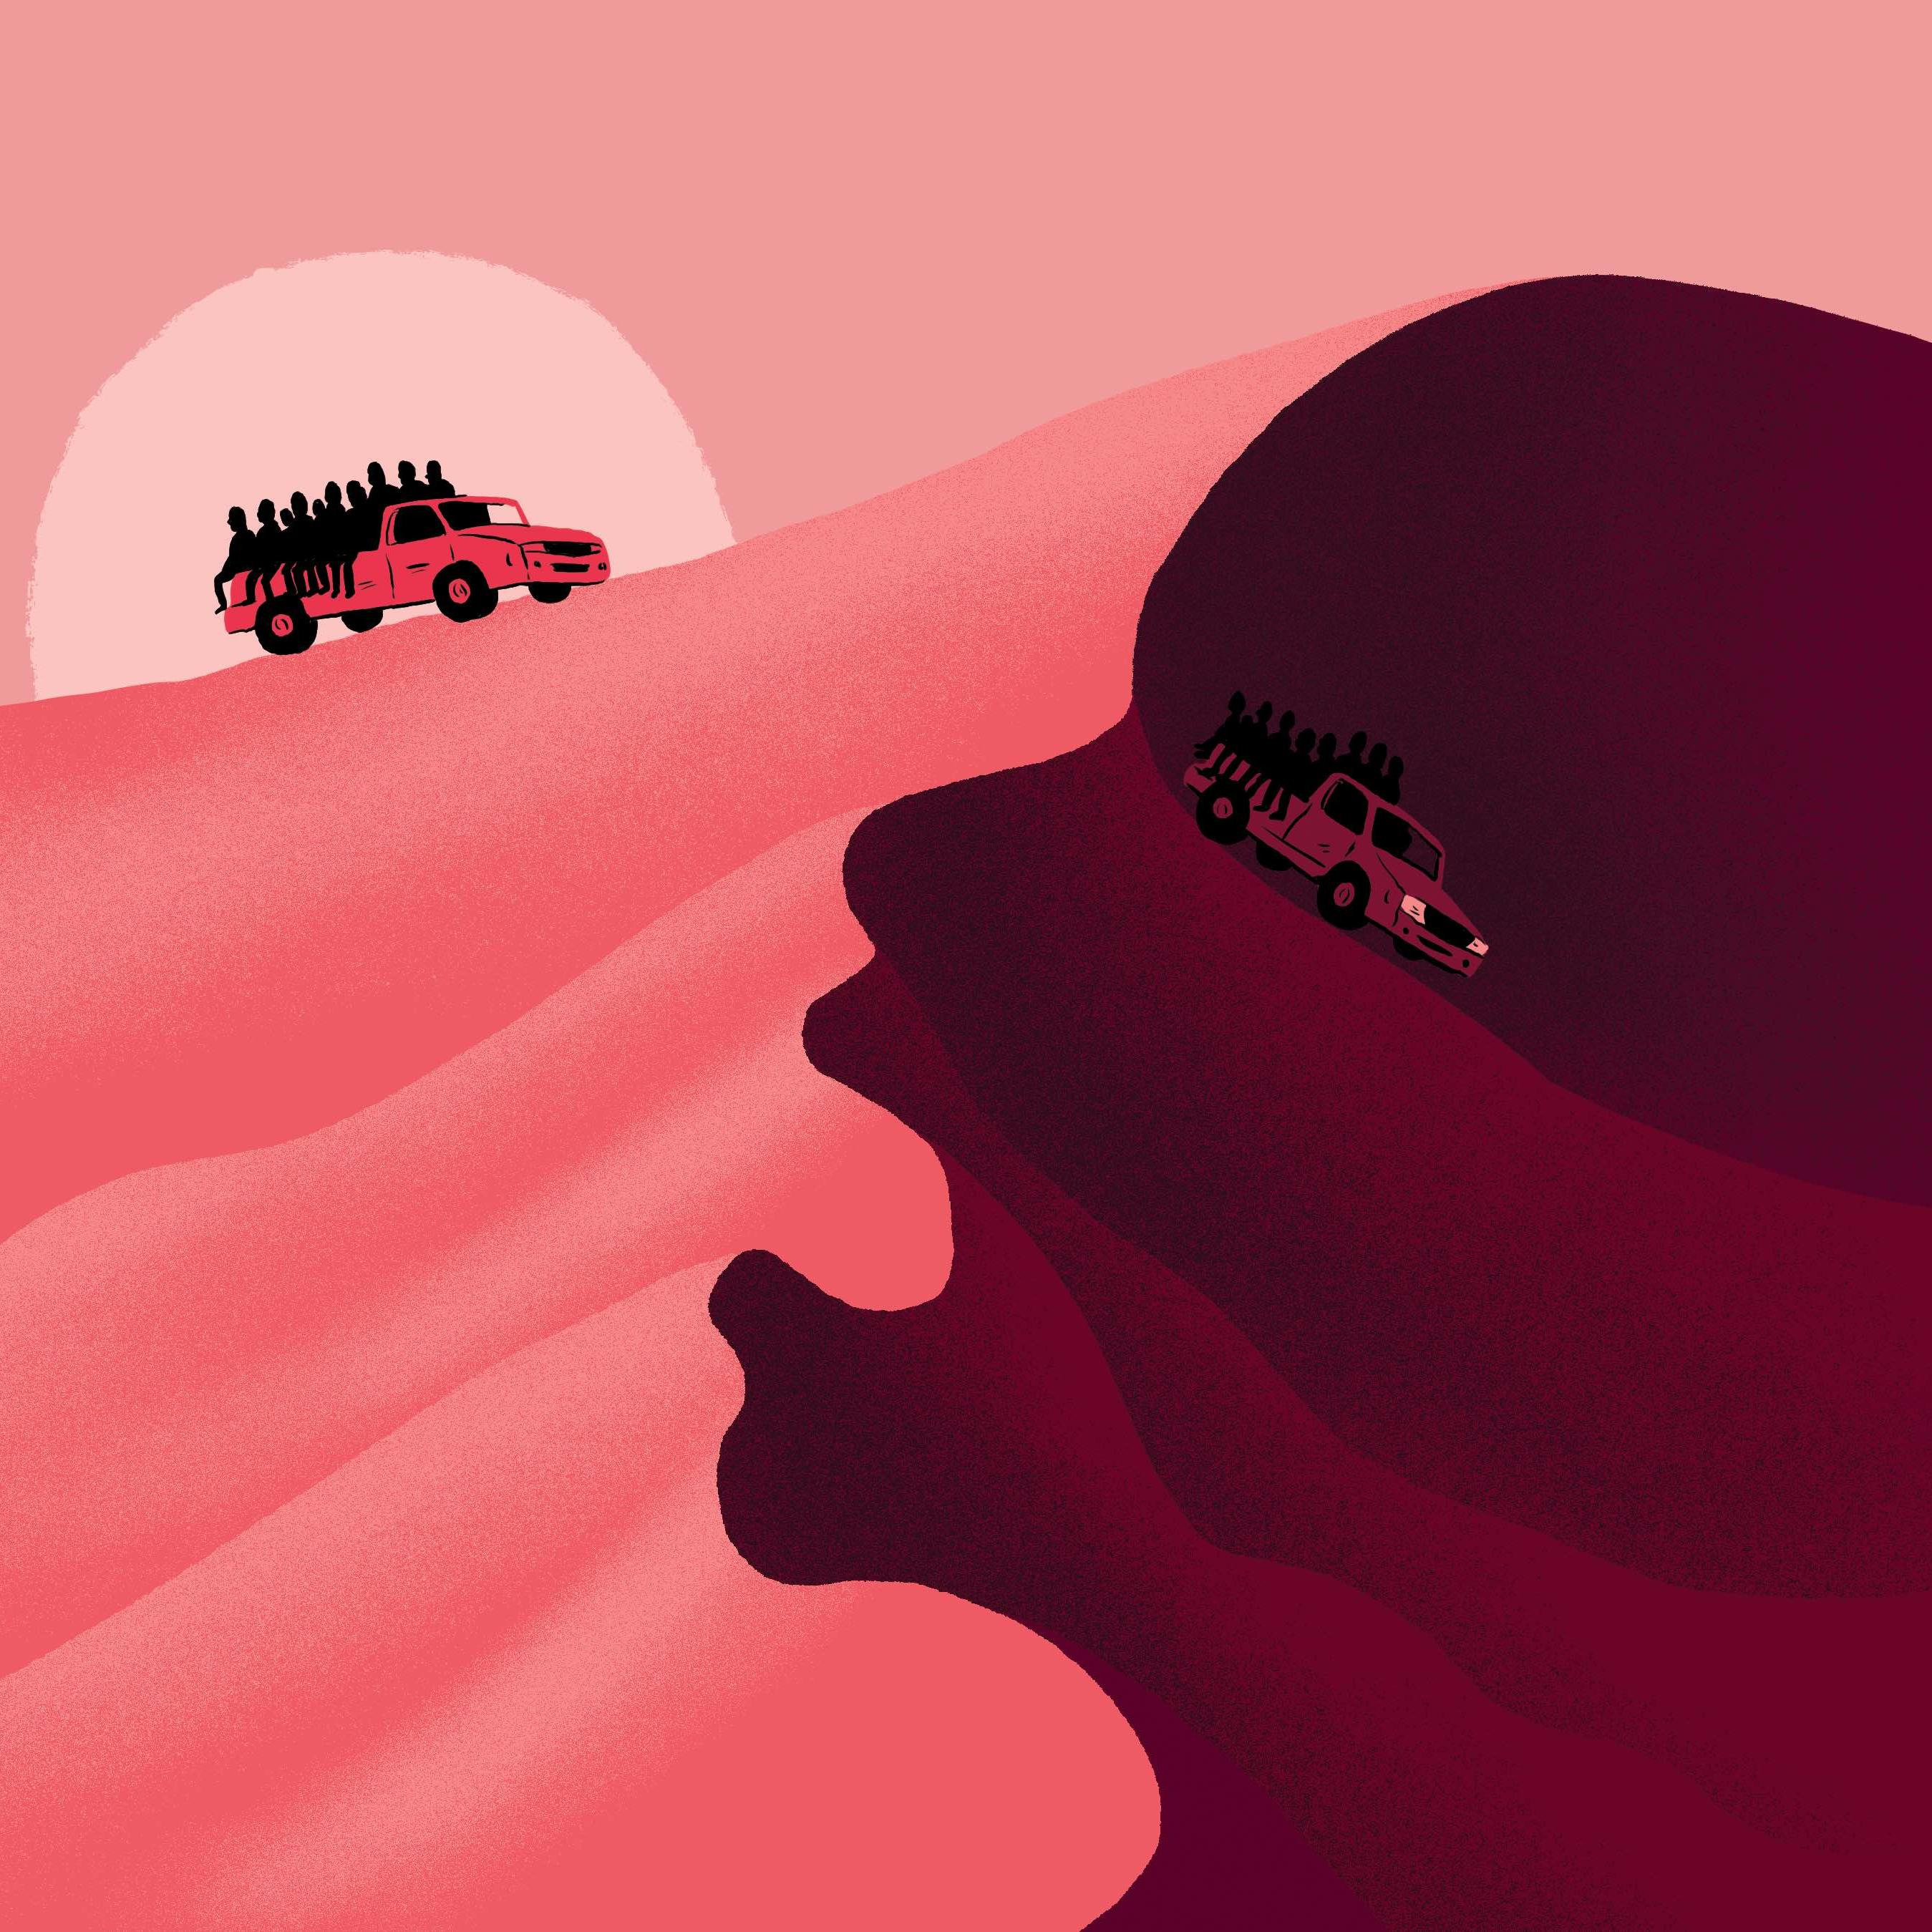 Paul Blow illustration about desert journey in Sahara Niger